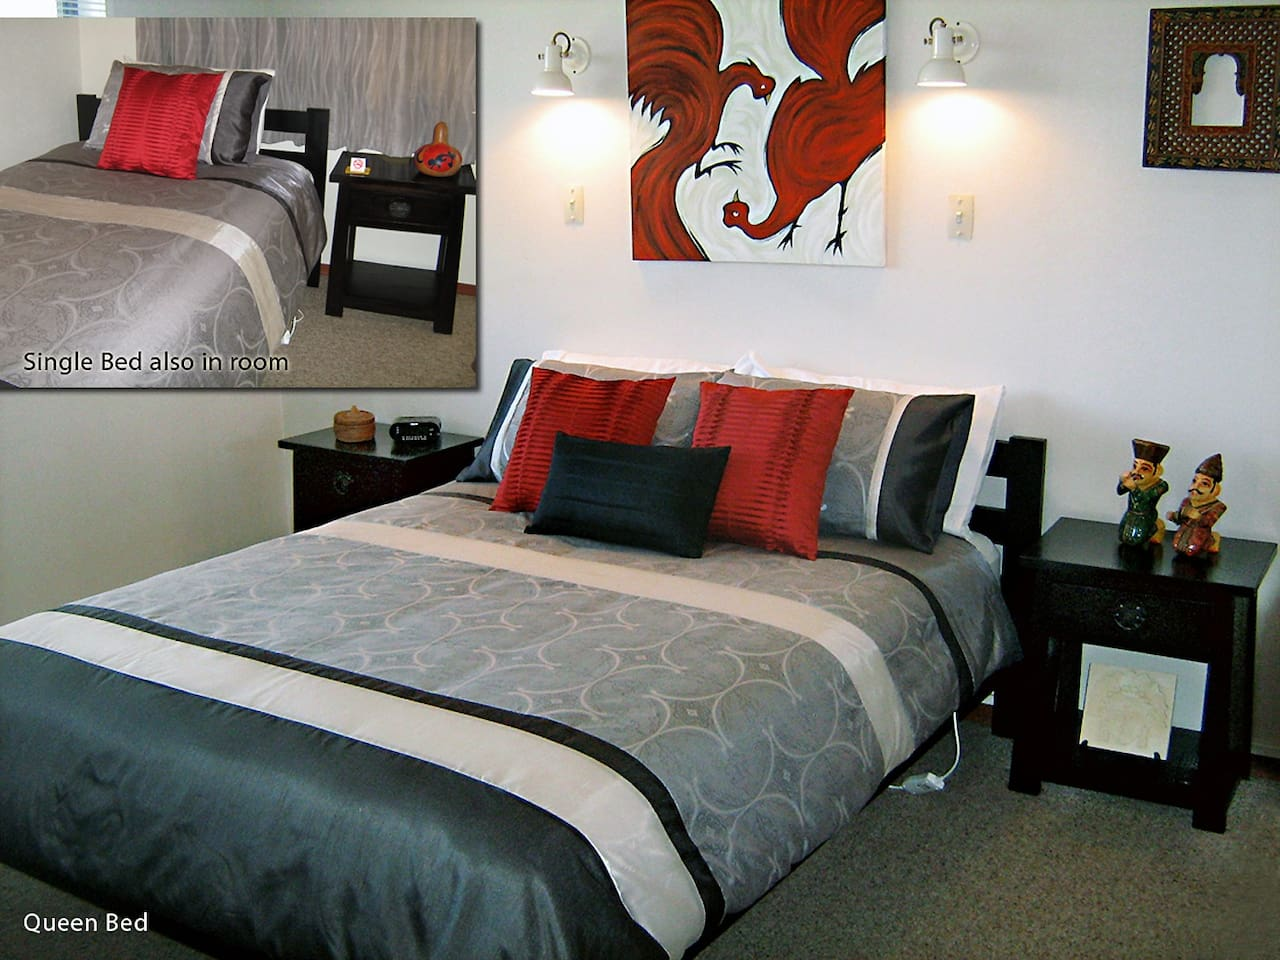 Rotorua City Homestay Room 2 has queen bed and single bed in room.